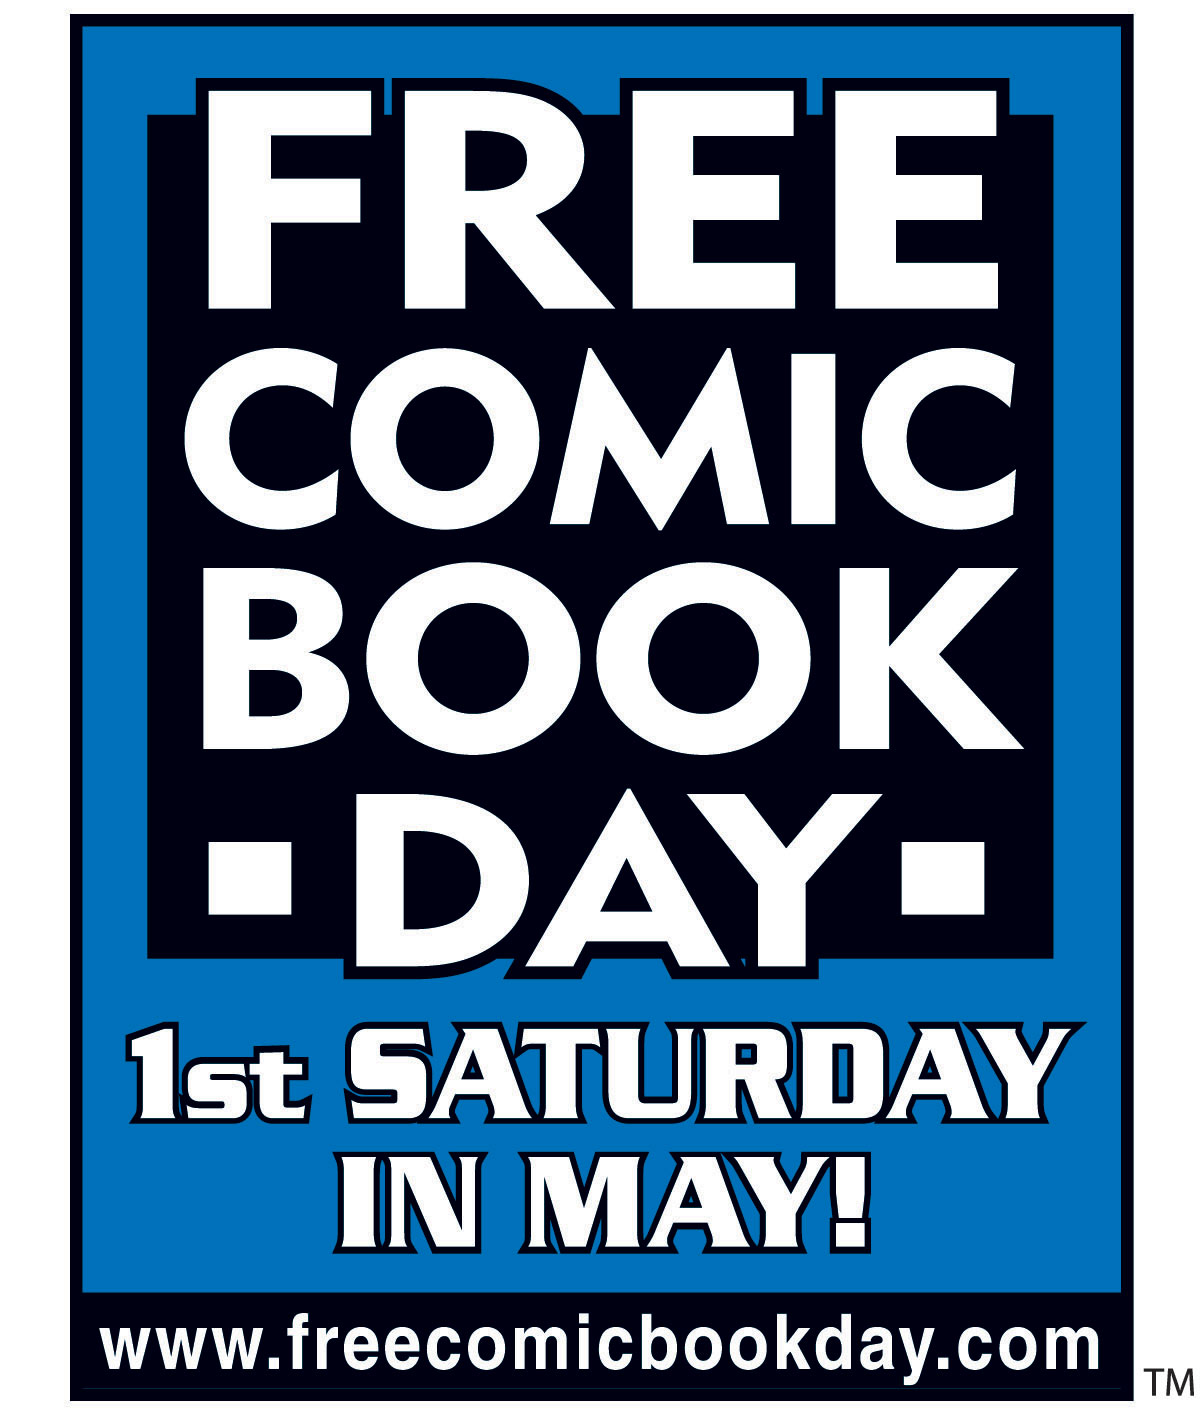 Free Comic Book Day Flyer: Free Comic Book Day!!!!